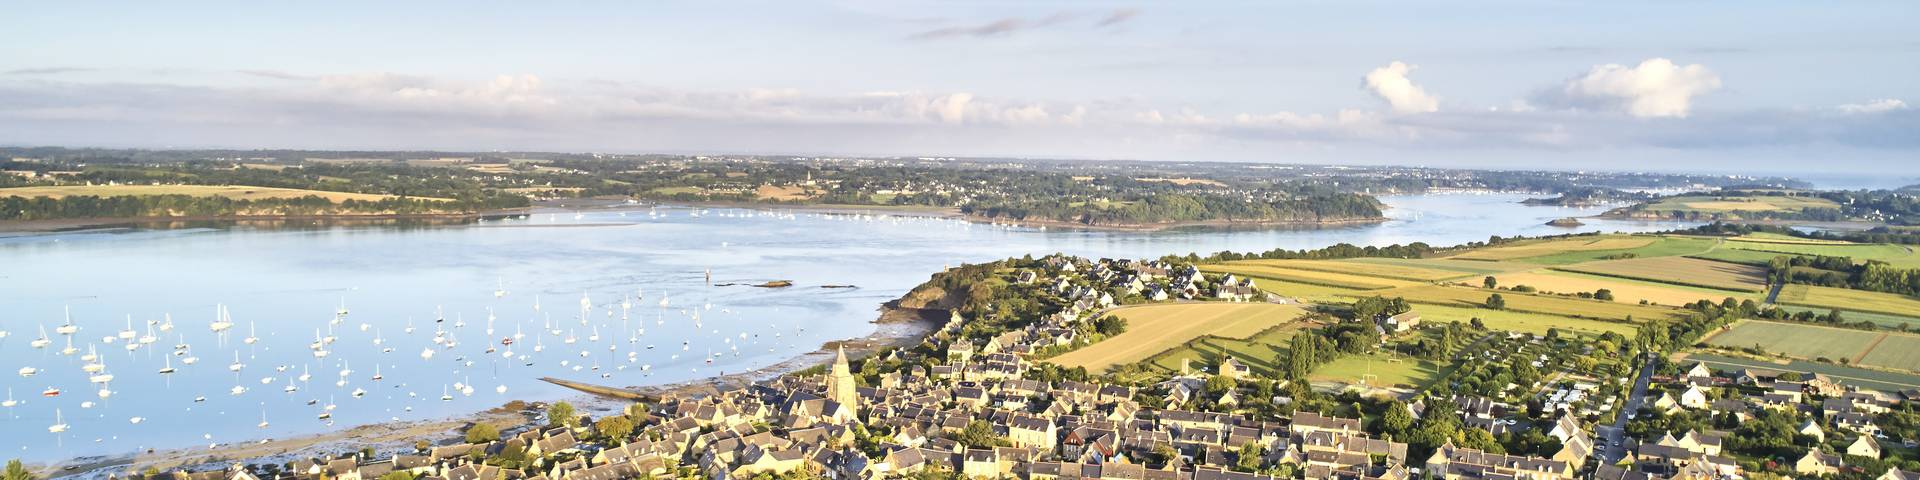 Our facilities and services | Saint-Malo - Bay of Mont-Saint ...